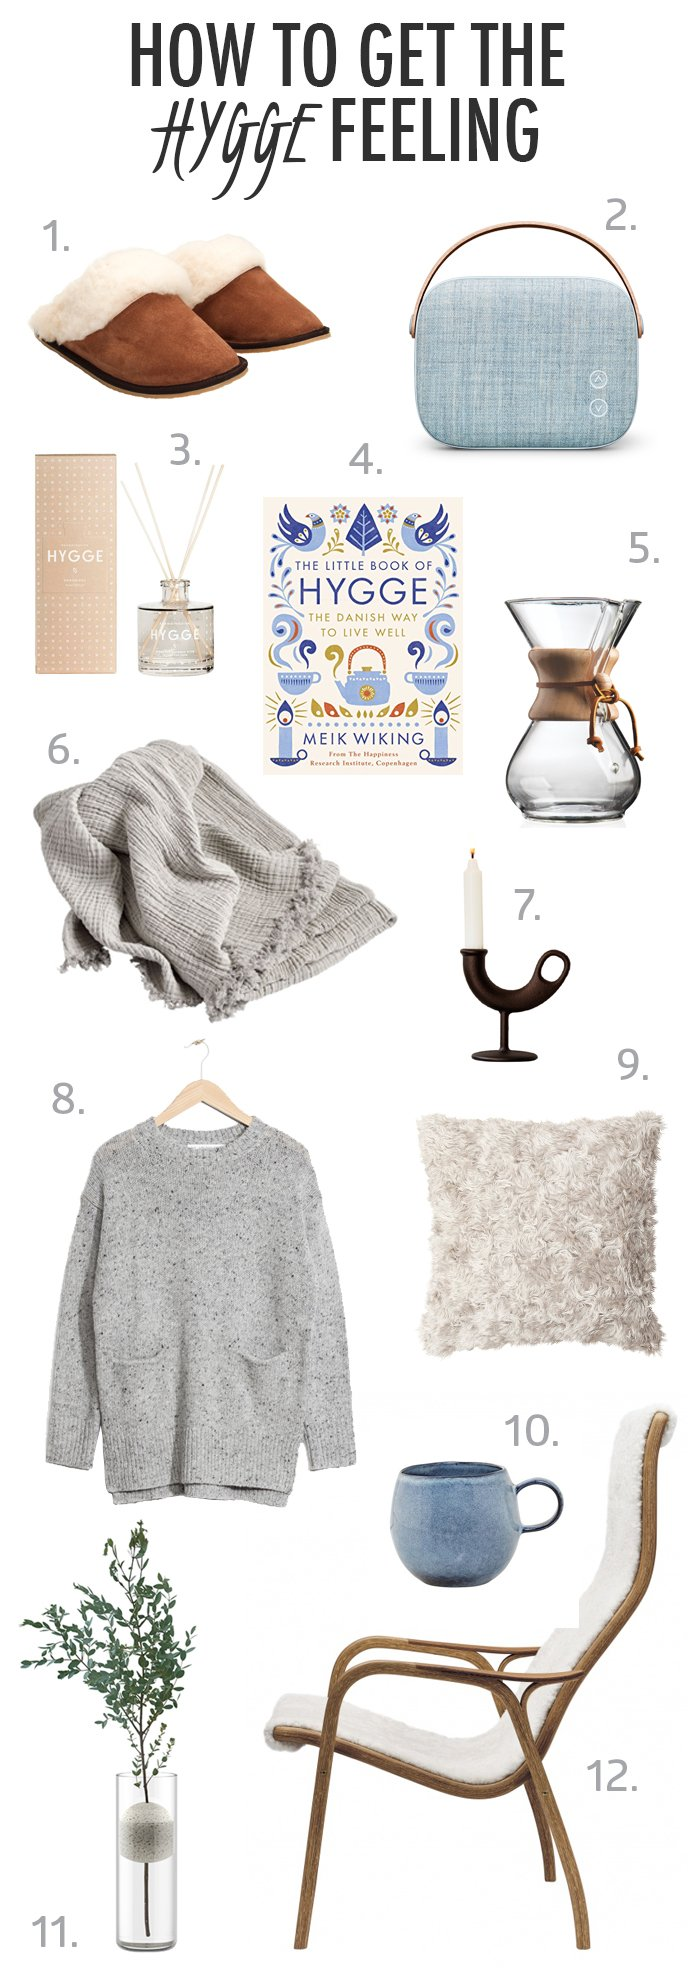 how_to_hygge_feeling_cozy_nordic